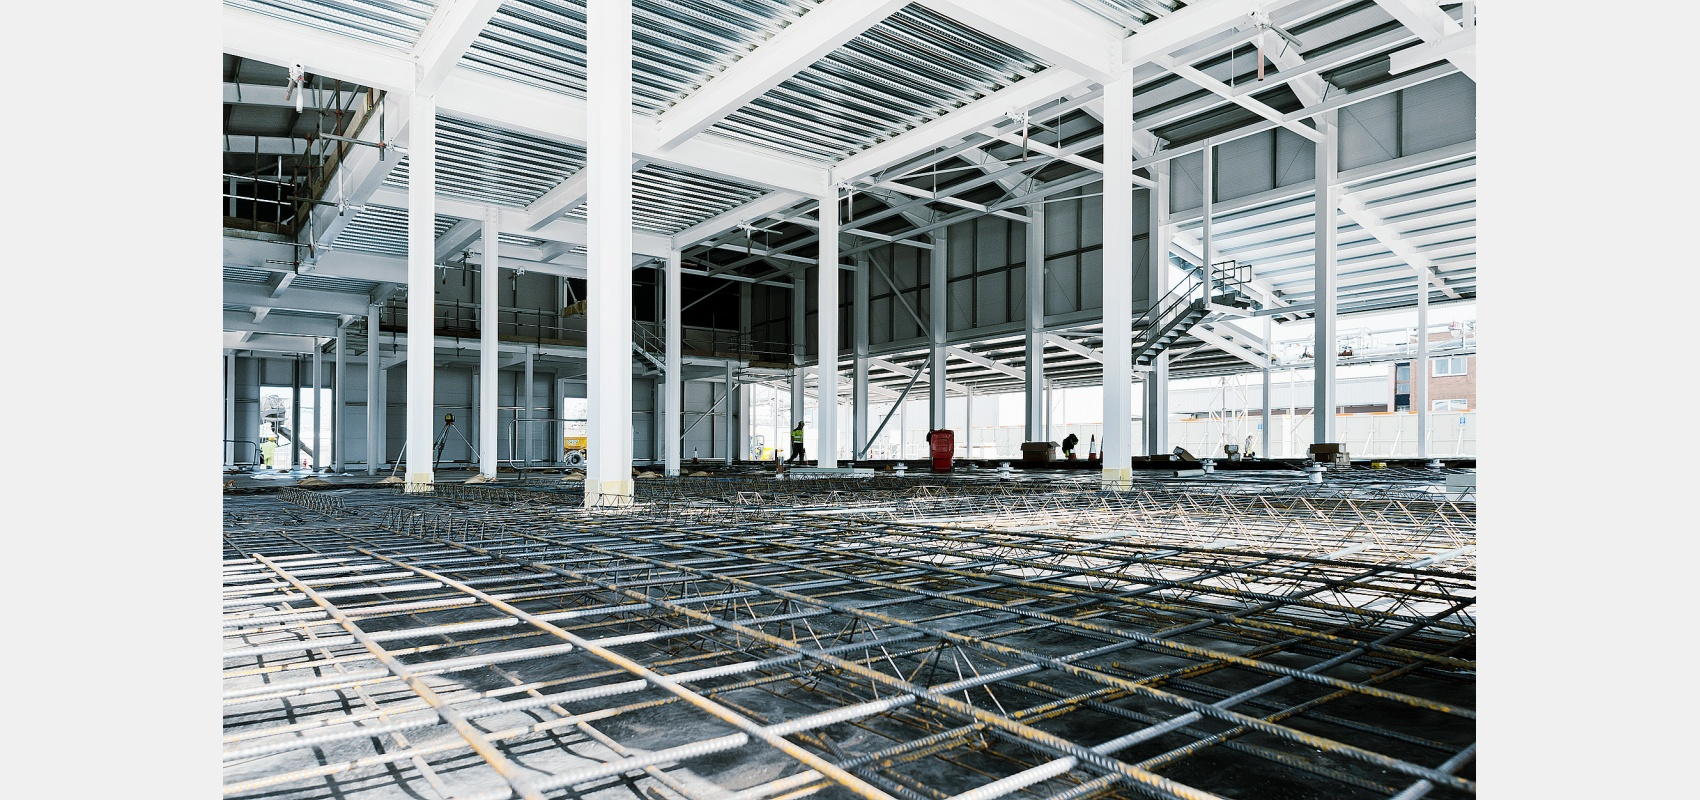 Construction photography/interior image/reinforced floors/ being laid/ for construction of new lab.